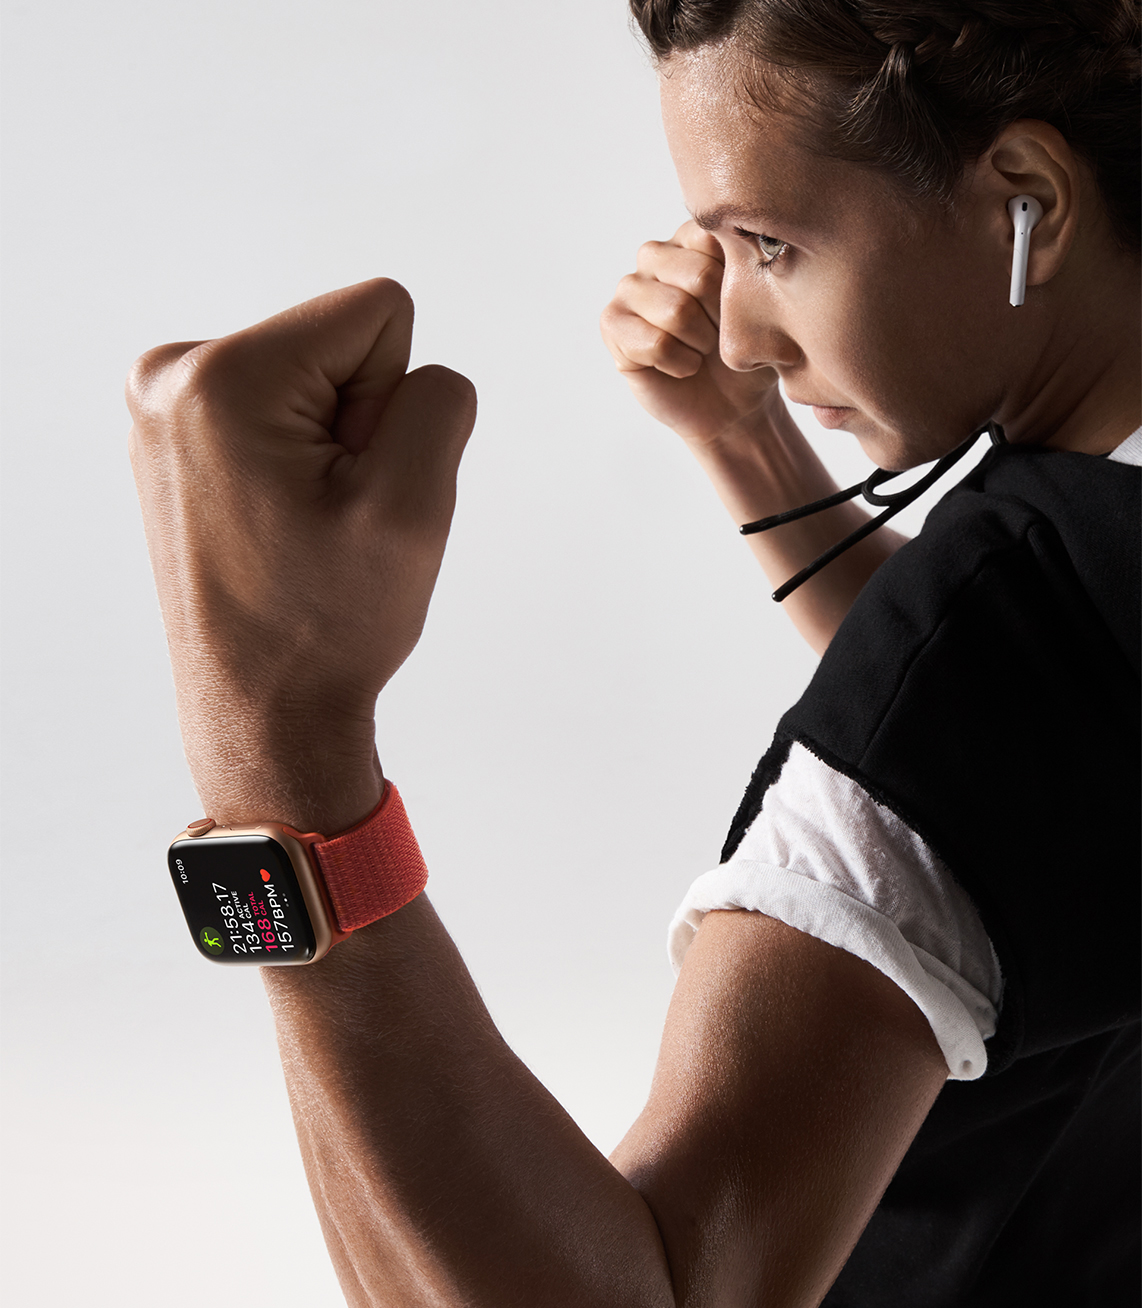 https://www.apple.com/newsroom/images/product/watch/lifestyle/apple-watch-series4_boxer-lifestyle_09122018_carousel.jpg.large_2x.jpg